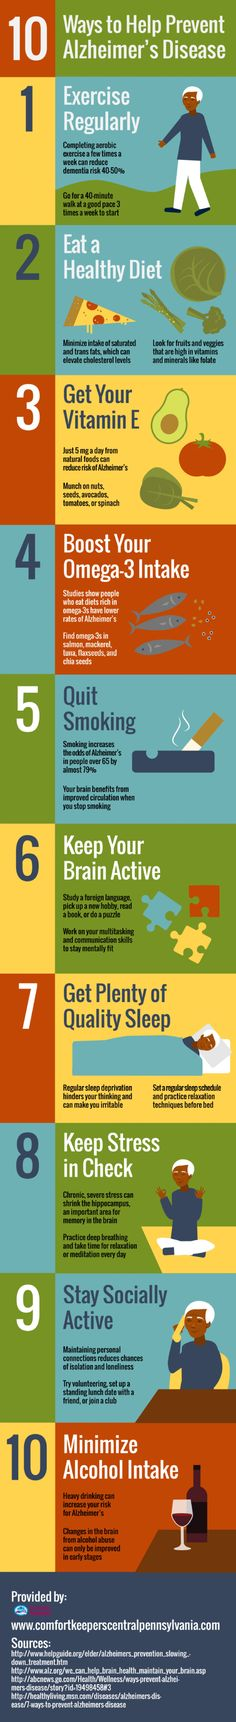 Reducing your Alzheimer's disease risk doesn't have to be difficult. Here are 10 simple strategies you can follow to reduce your risk. Learn other ways to protect yourself against Alzheimer's and take a free Alzheimer's Risk Assessment at www.memoryaid.org